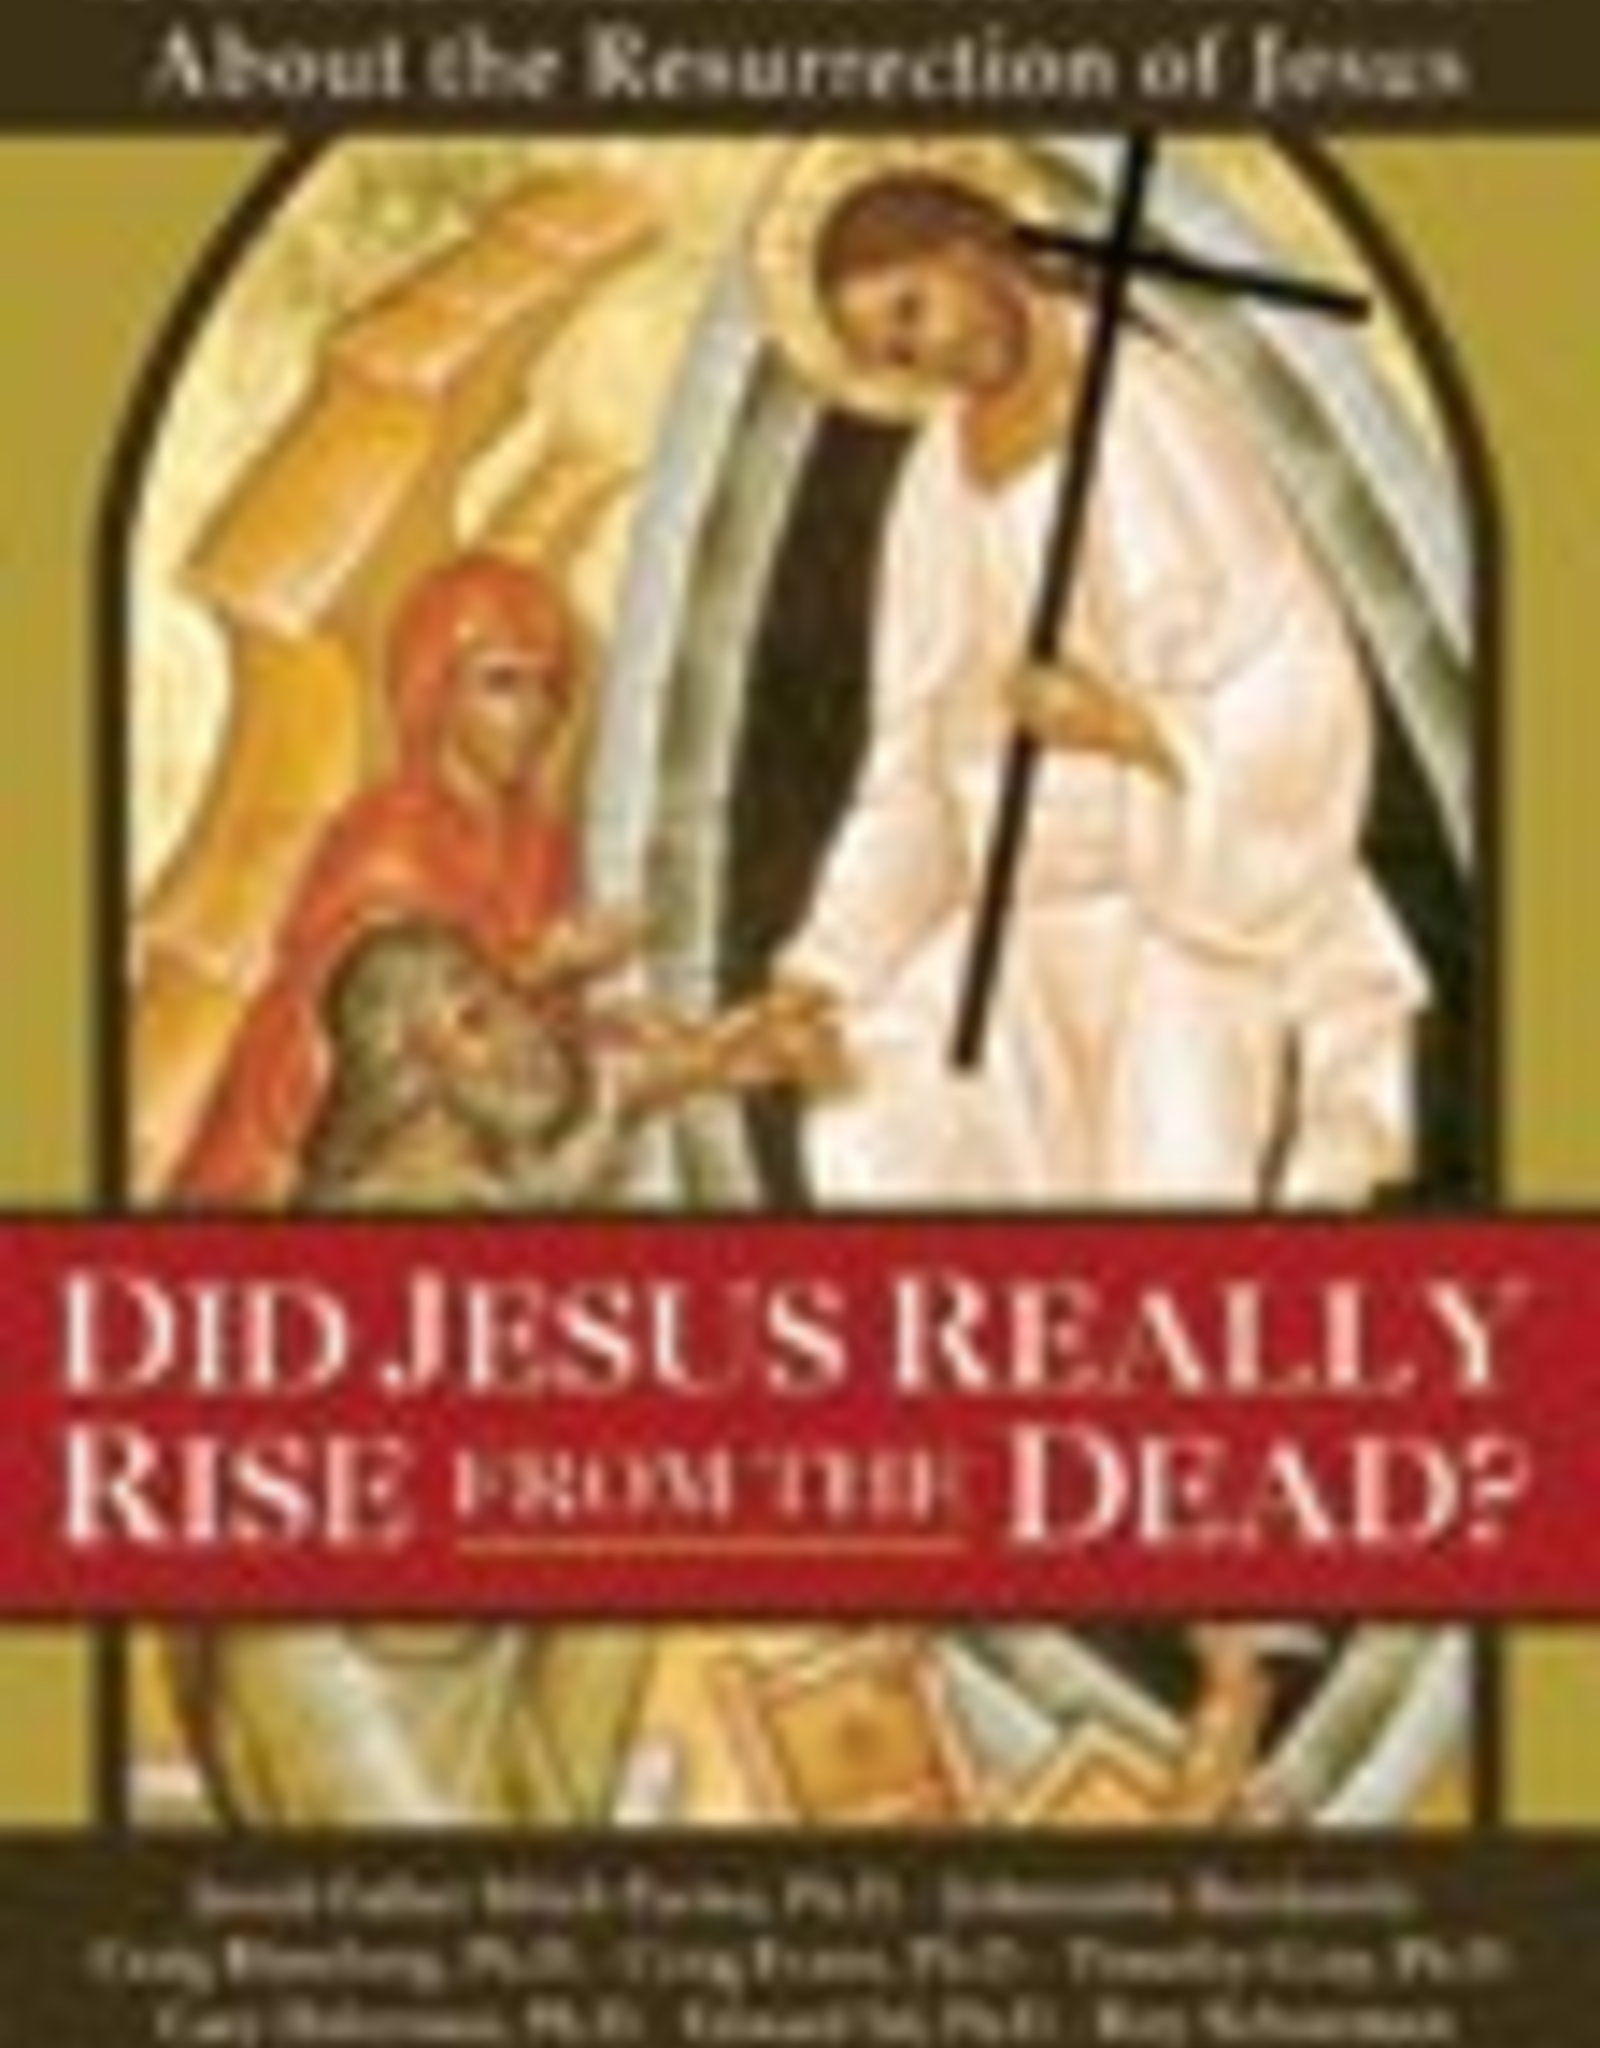 Ignatius Press Did Jesus Really Rise from the Dead?  (DVD)